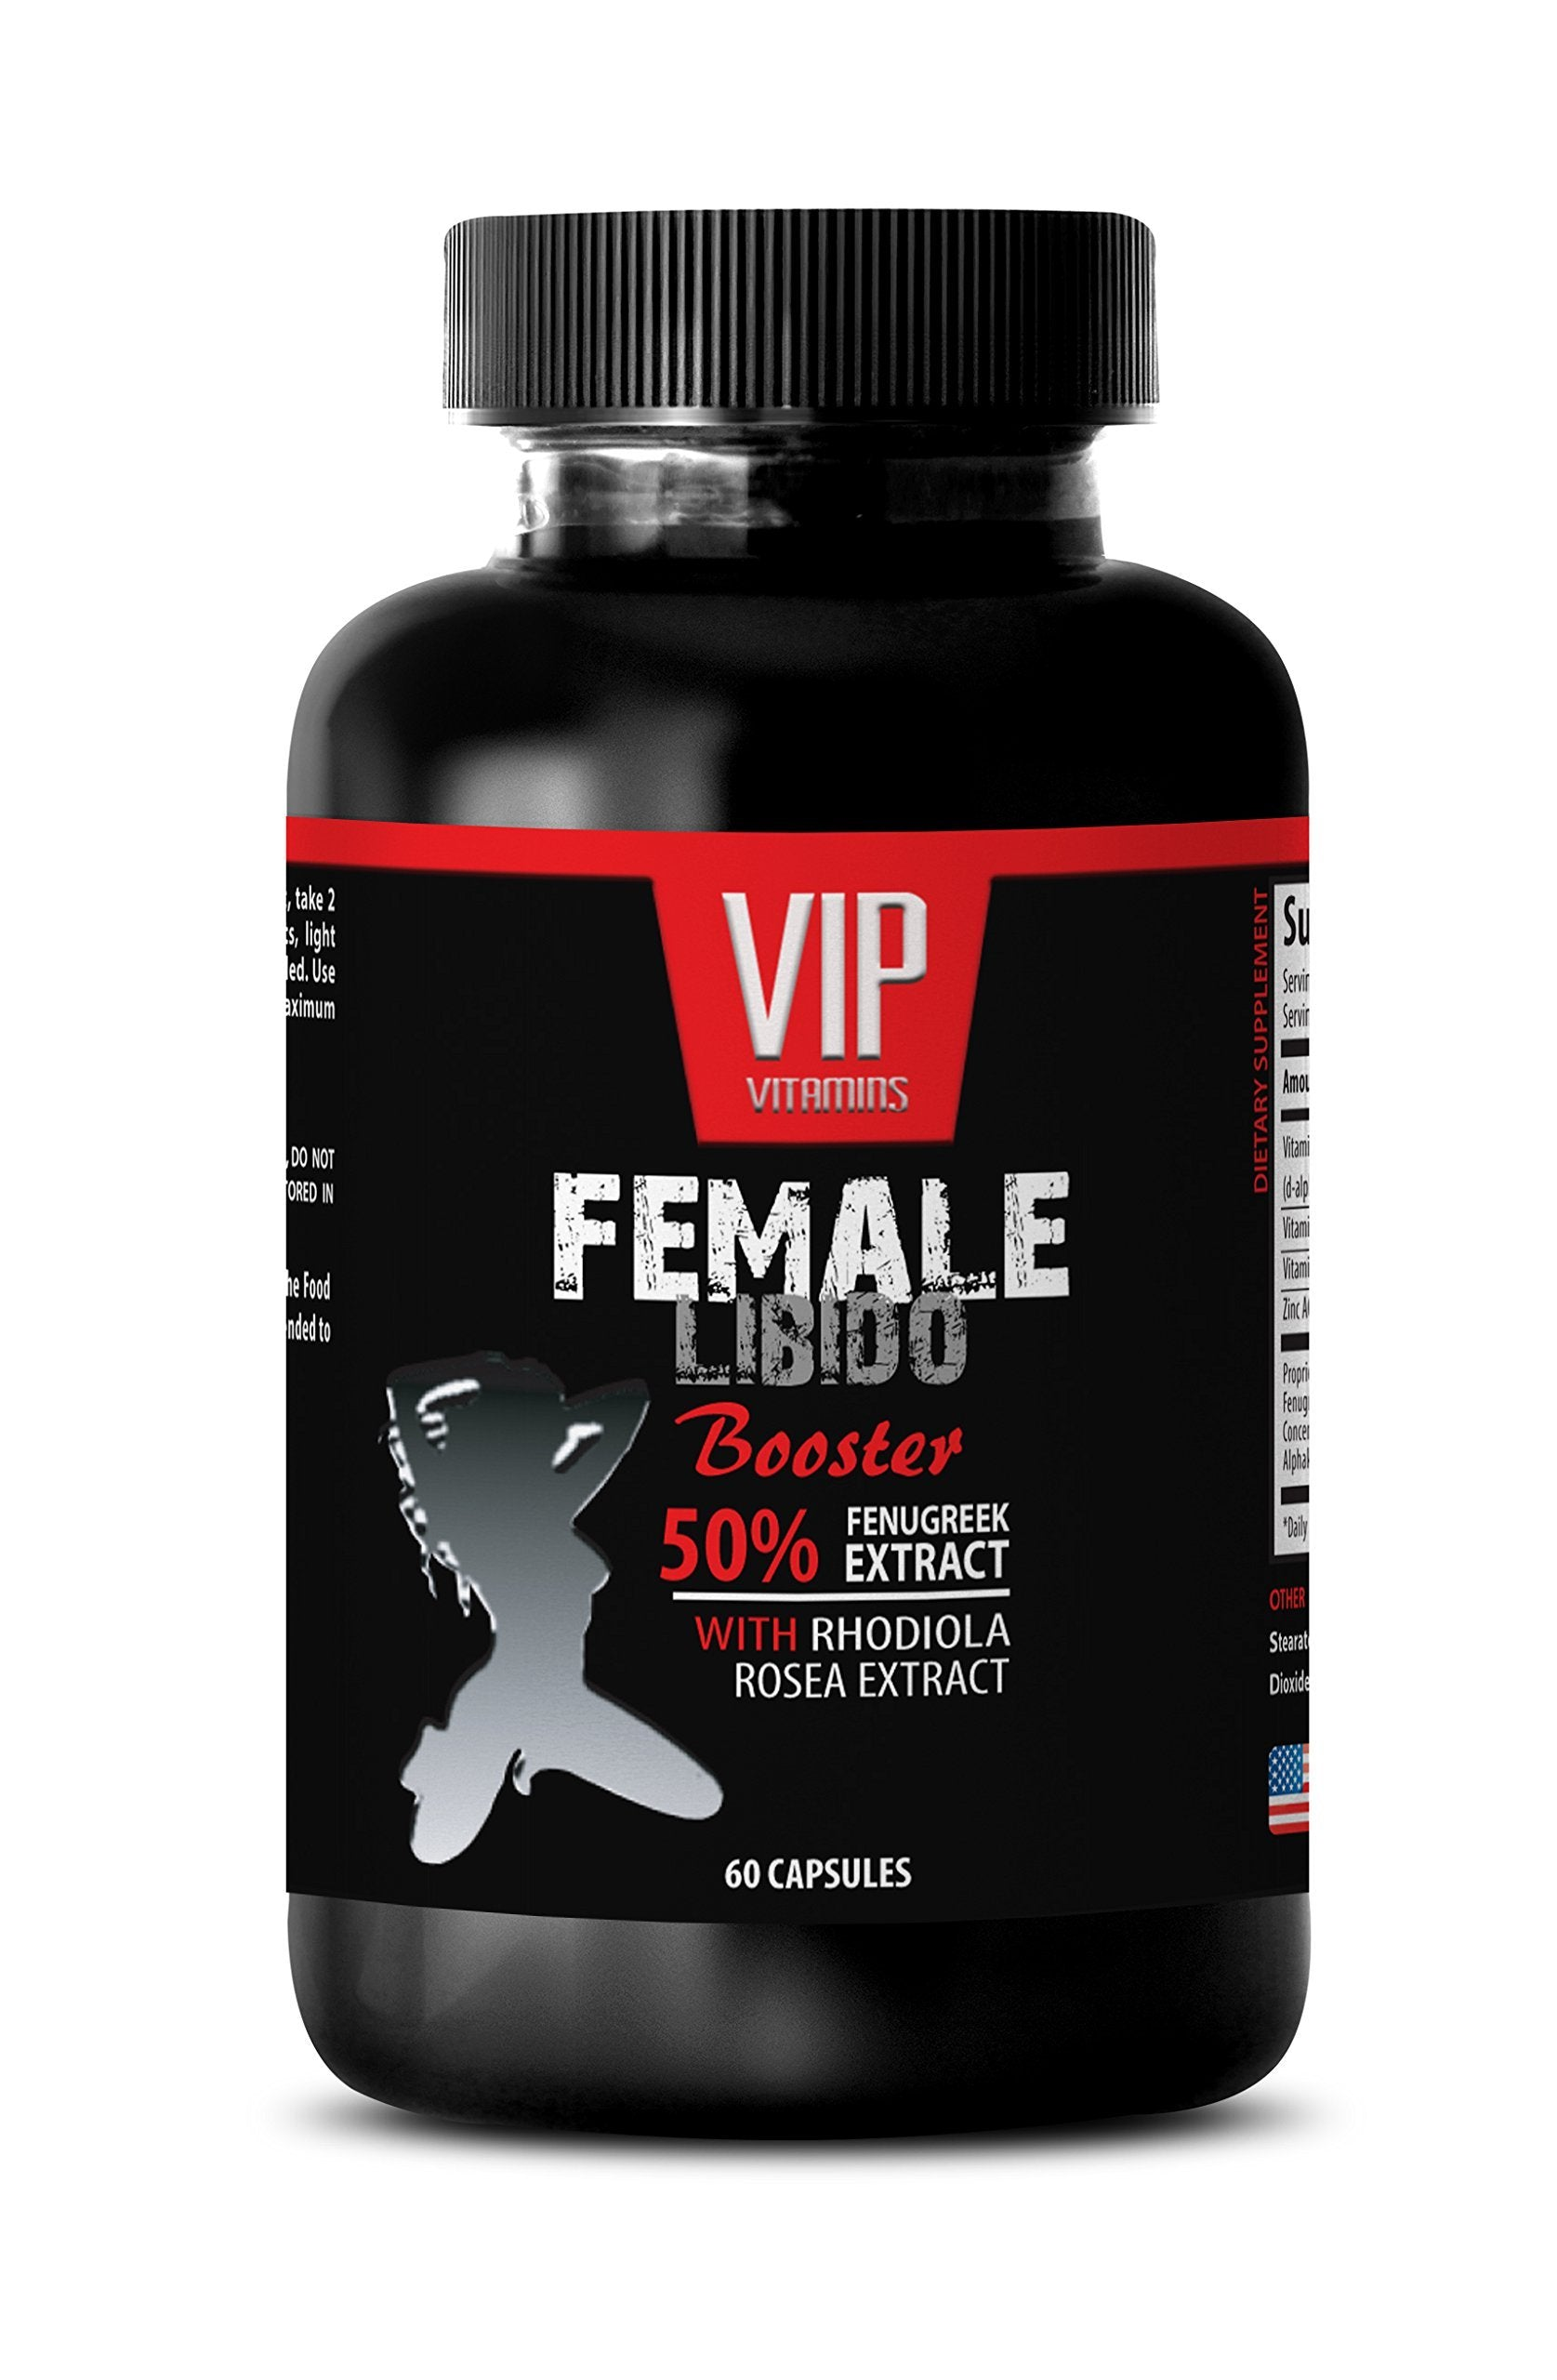 Sexual Enhancement for Women - Female LIBIDO Booster Pills - Fenugreek Extract for Women - 1 Bottle 60 Capsules